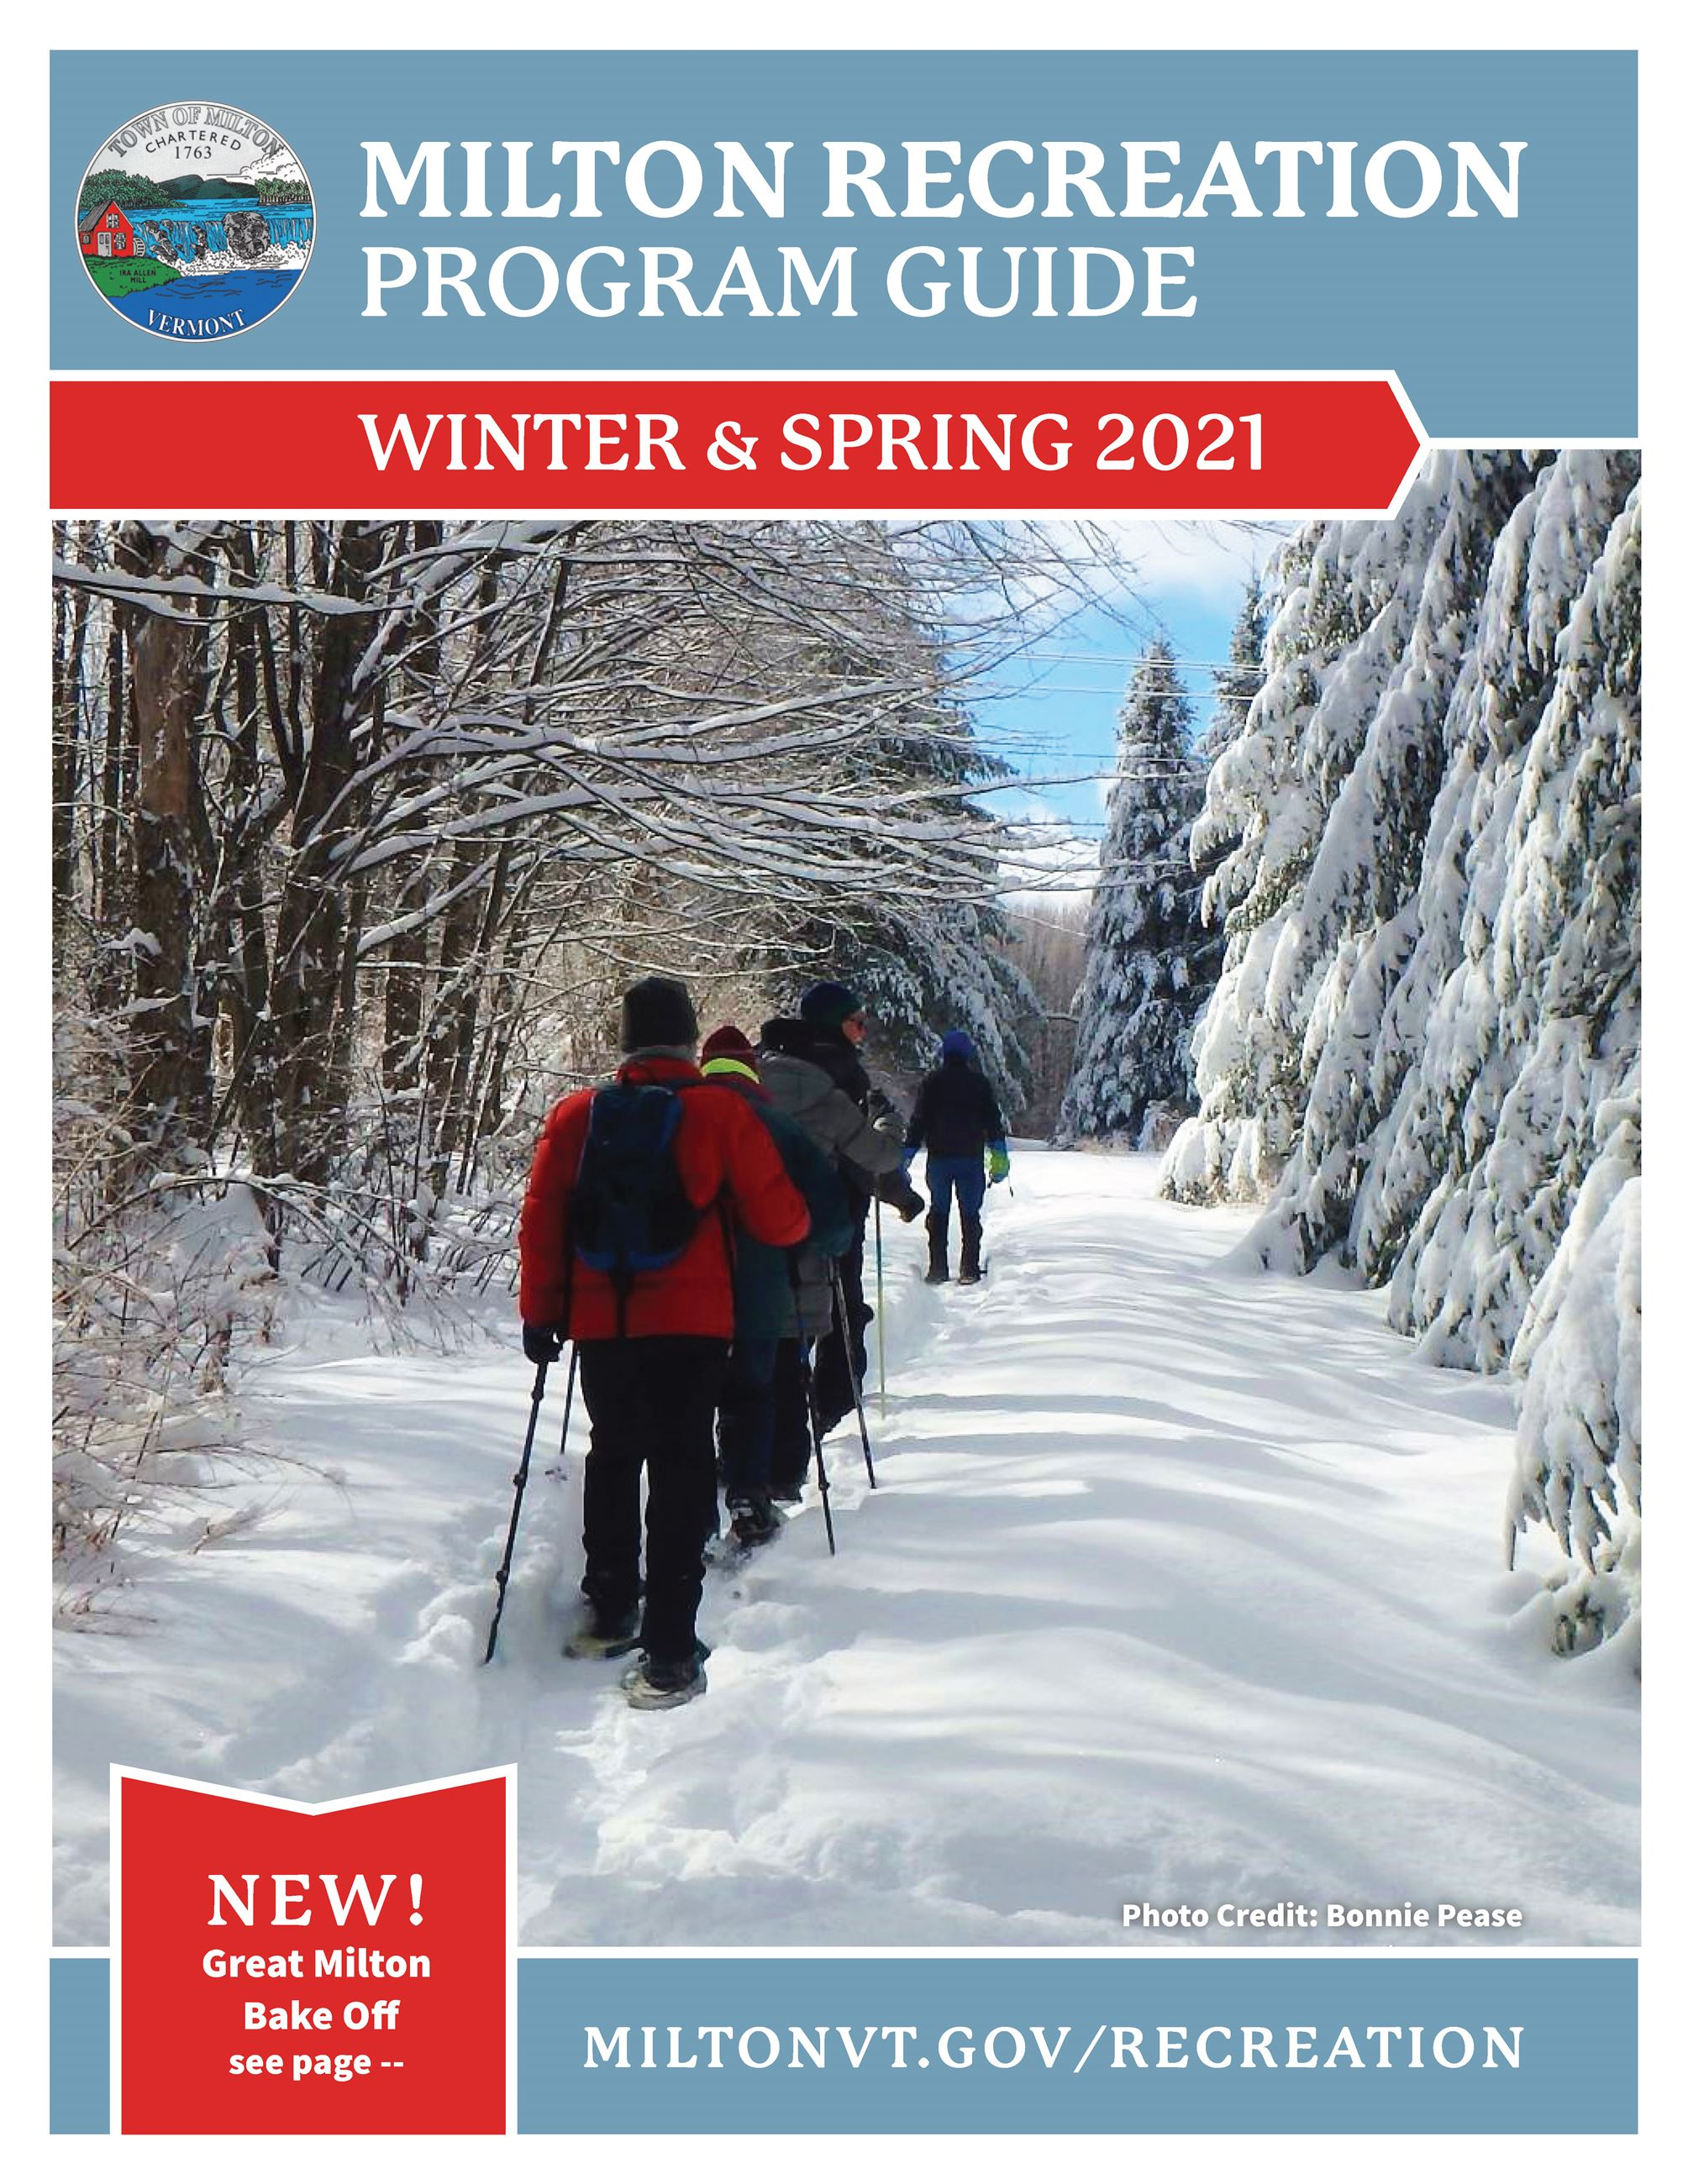 Winter & Spring 2021  Program Guide Cover